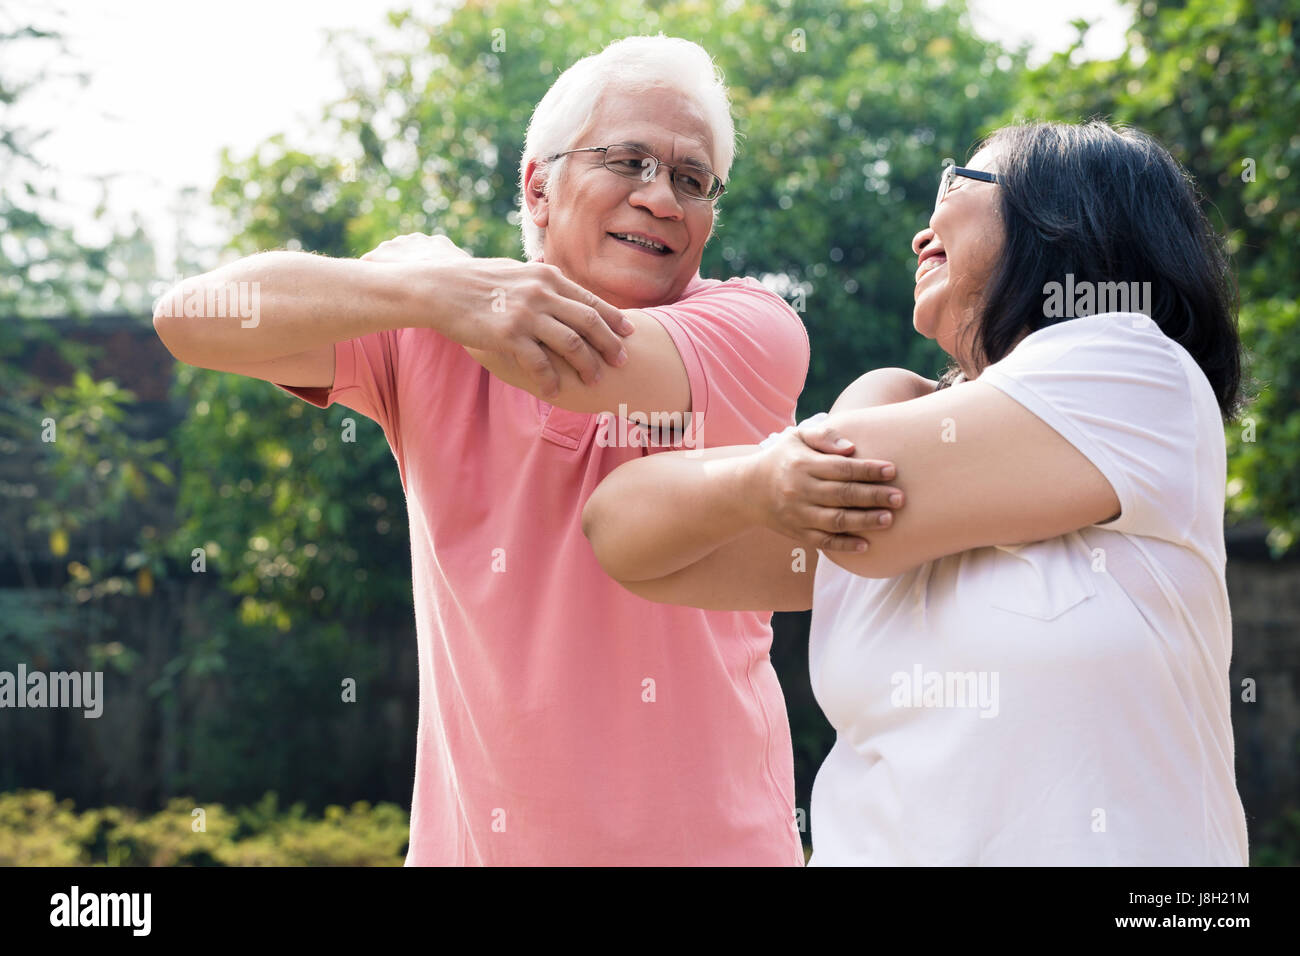 Senior man assisting his wife during warming up exercises outdoo - Stock Image